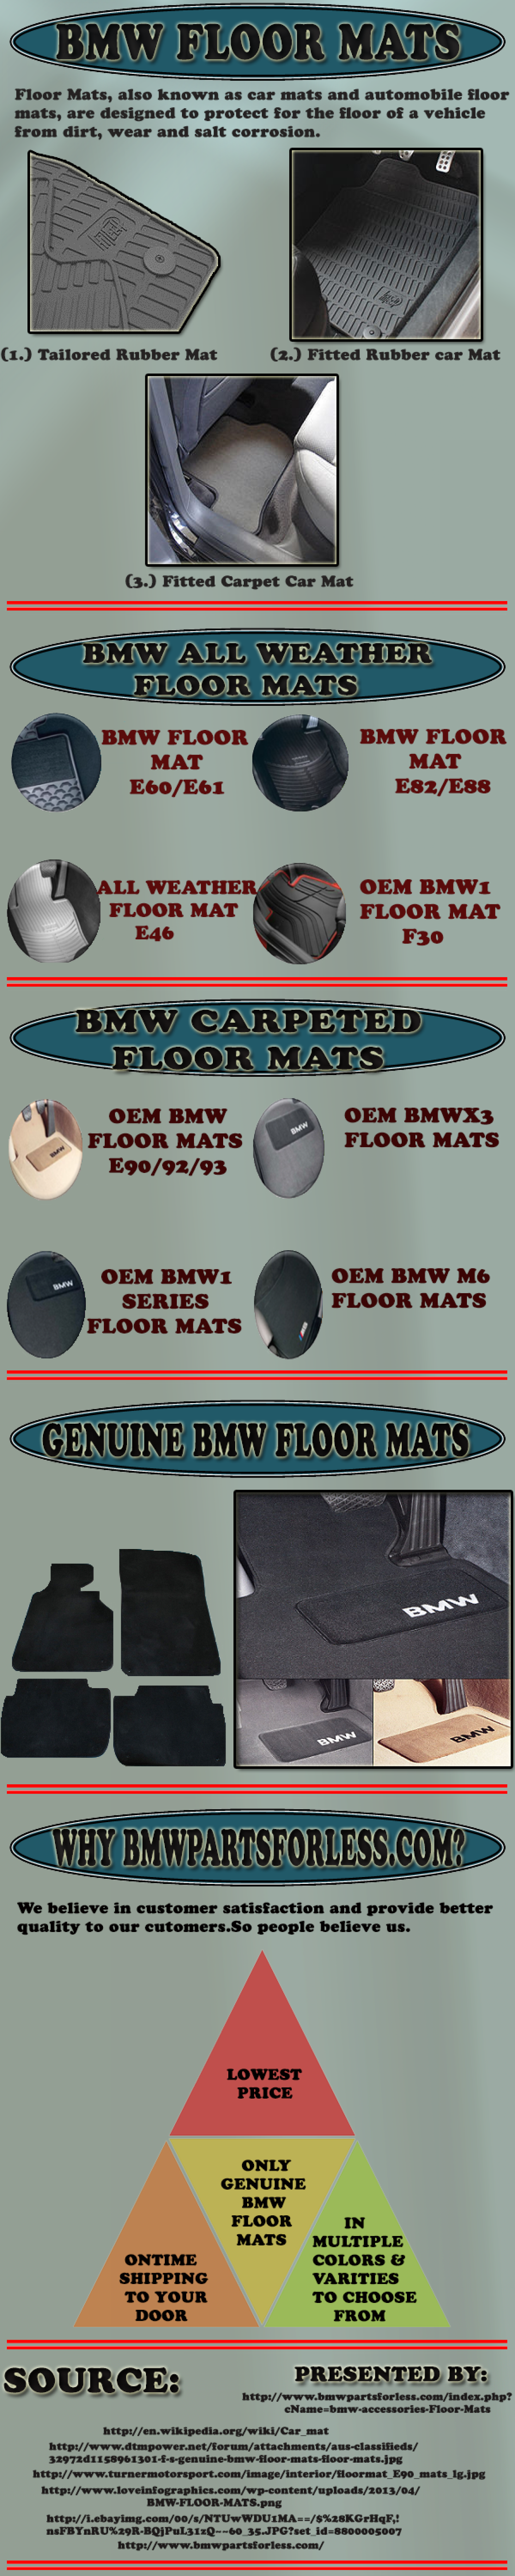 The genuine source for all BMW Accessories Infographic